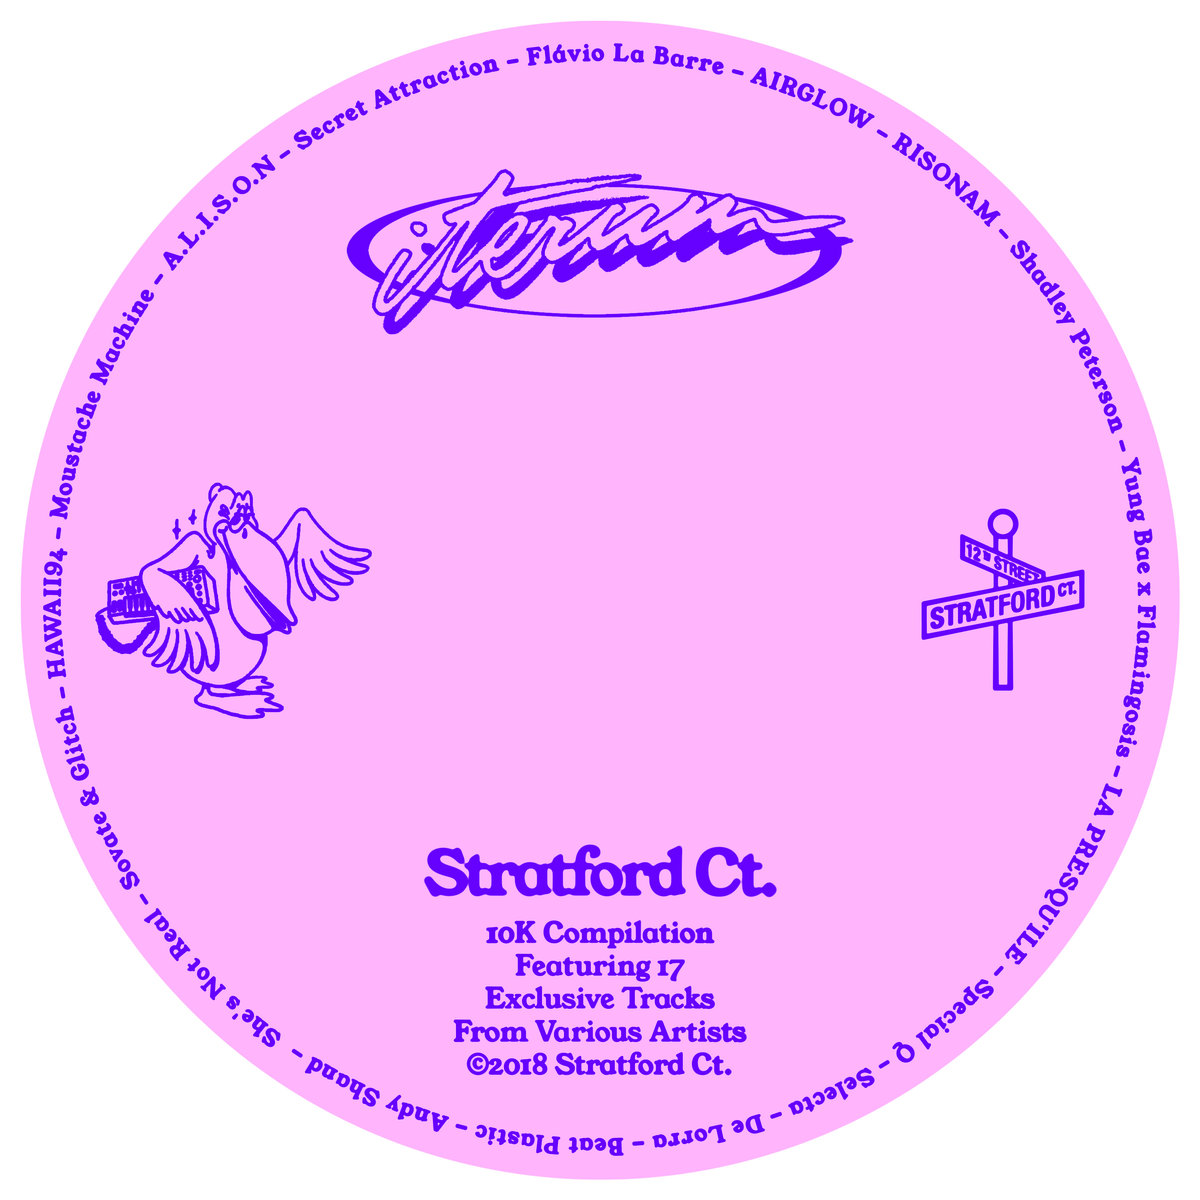 Stratford Ct. - Iterum | Die Future Funk - Nudisco - French House Compilation im Full Album Stream